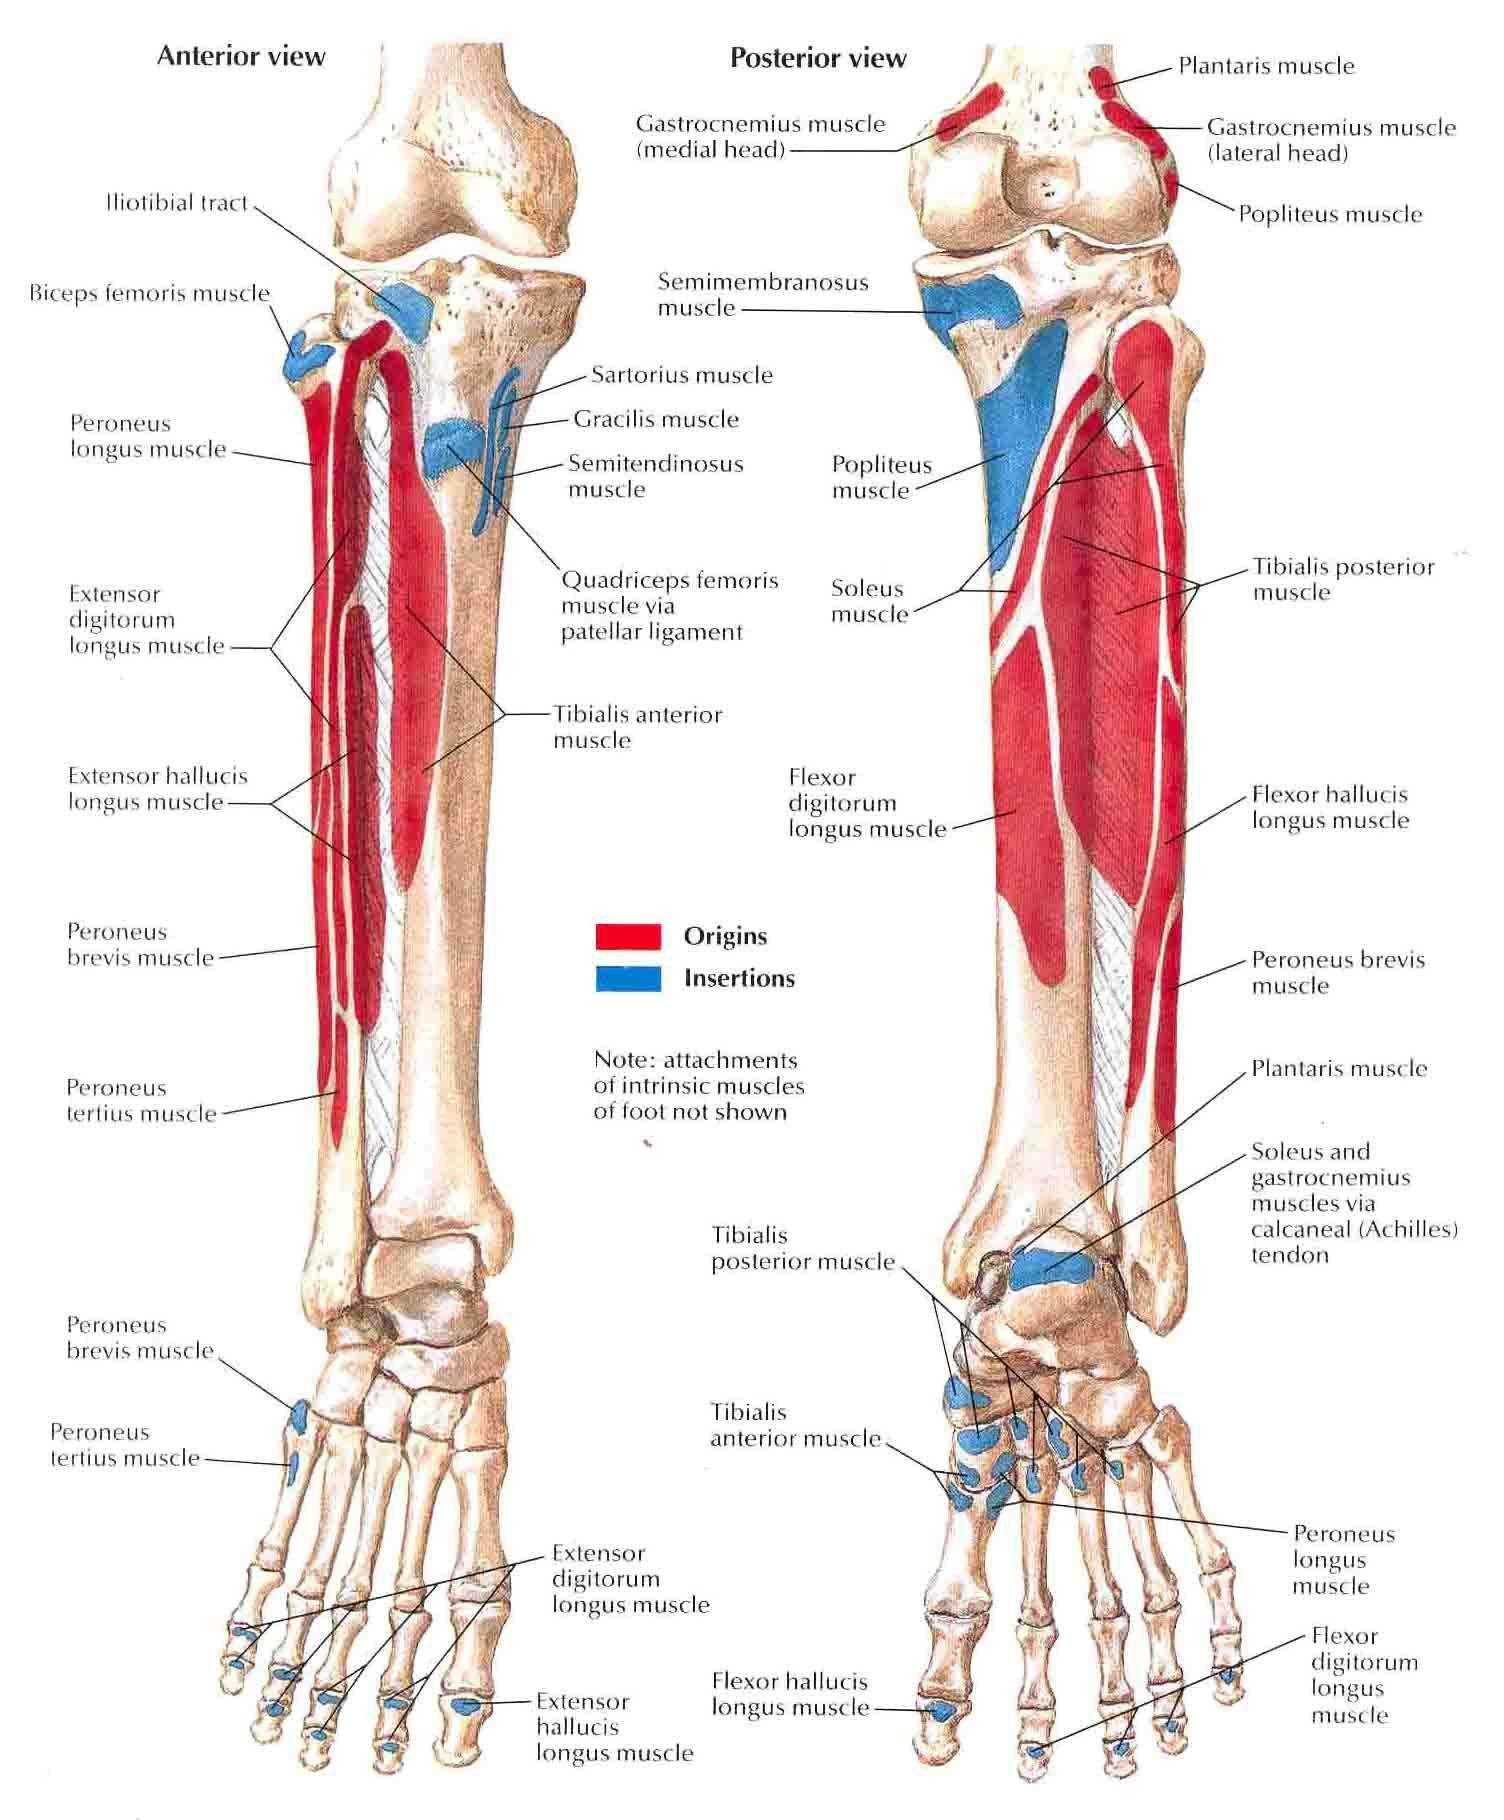 Muscles Origin And Insertion Lower Limb Muscle Origin And Insertion